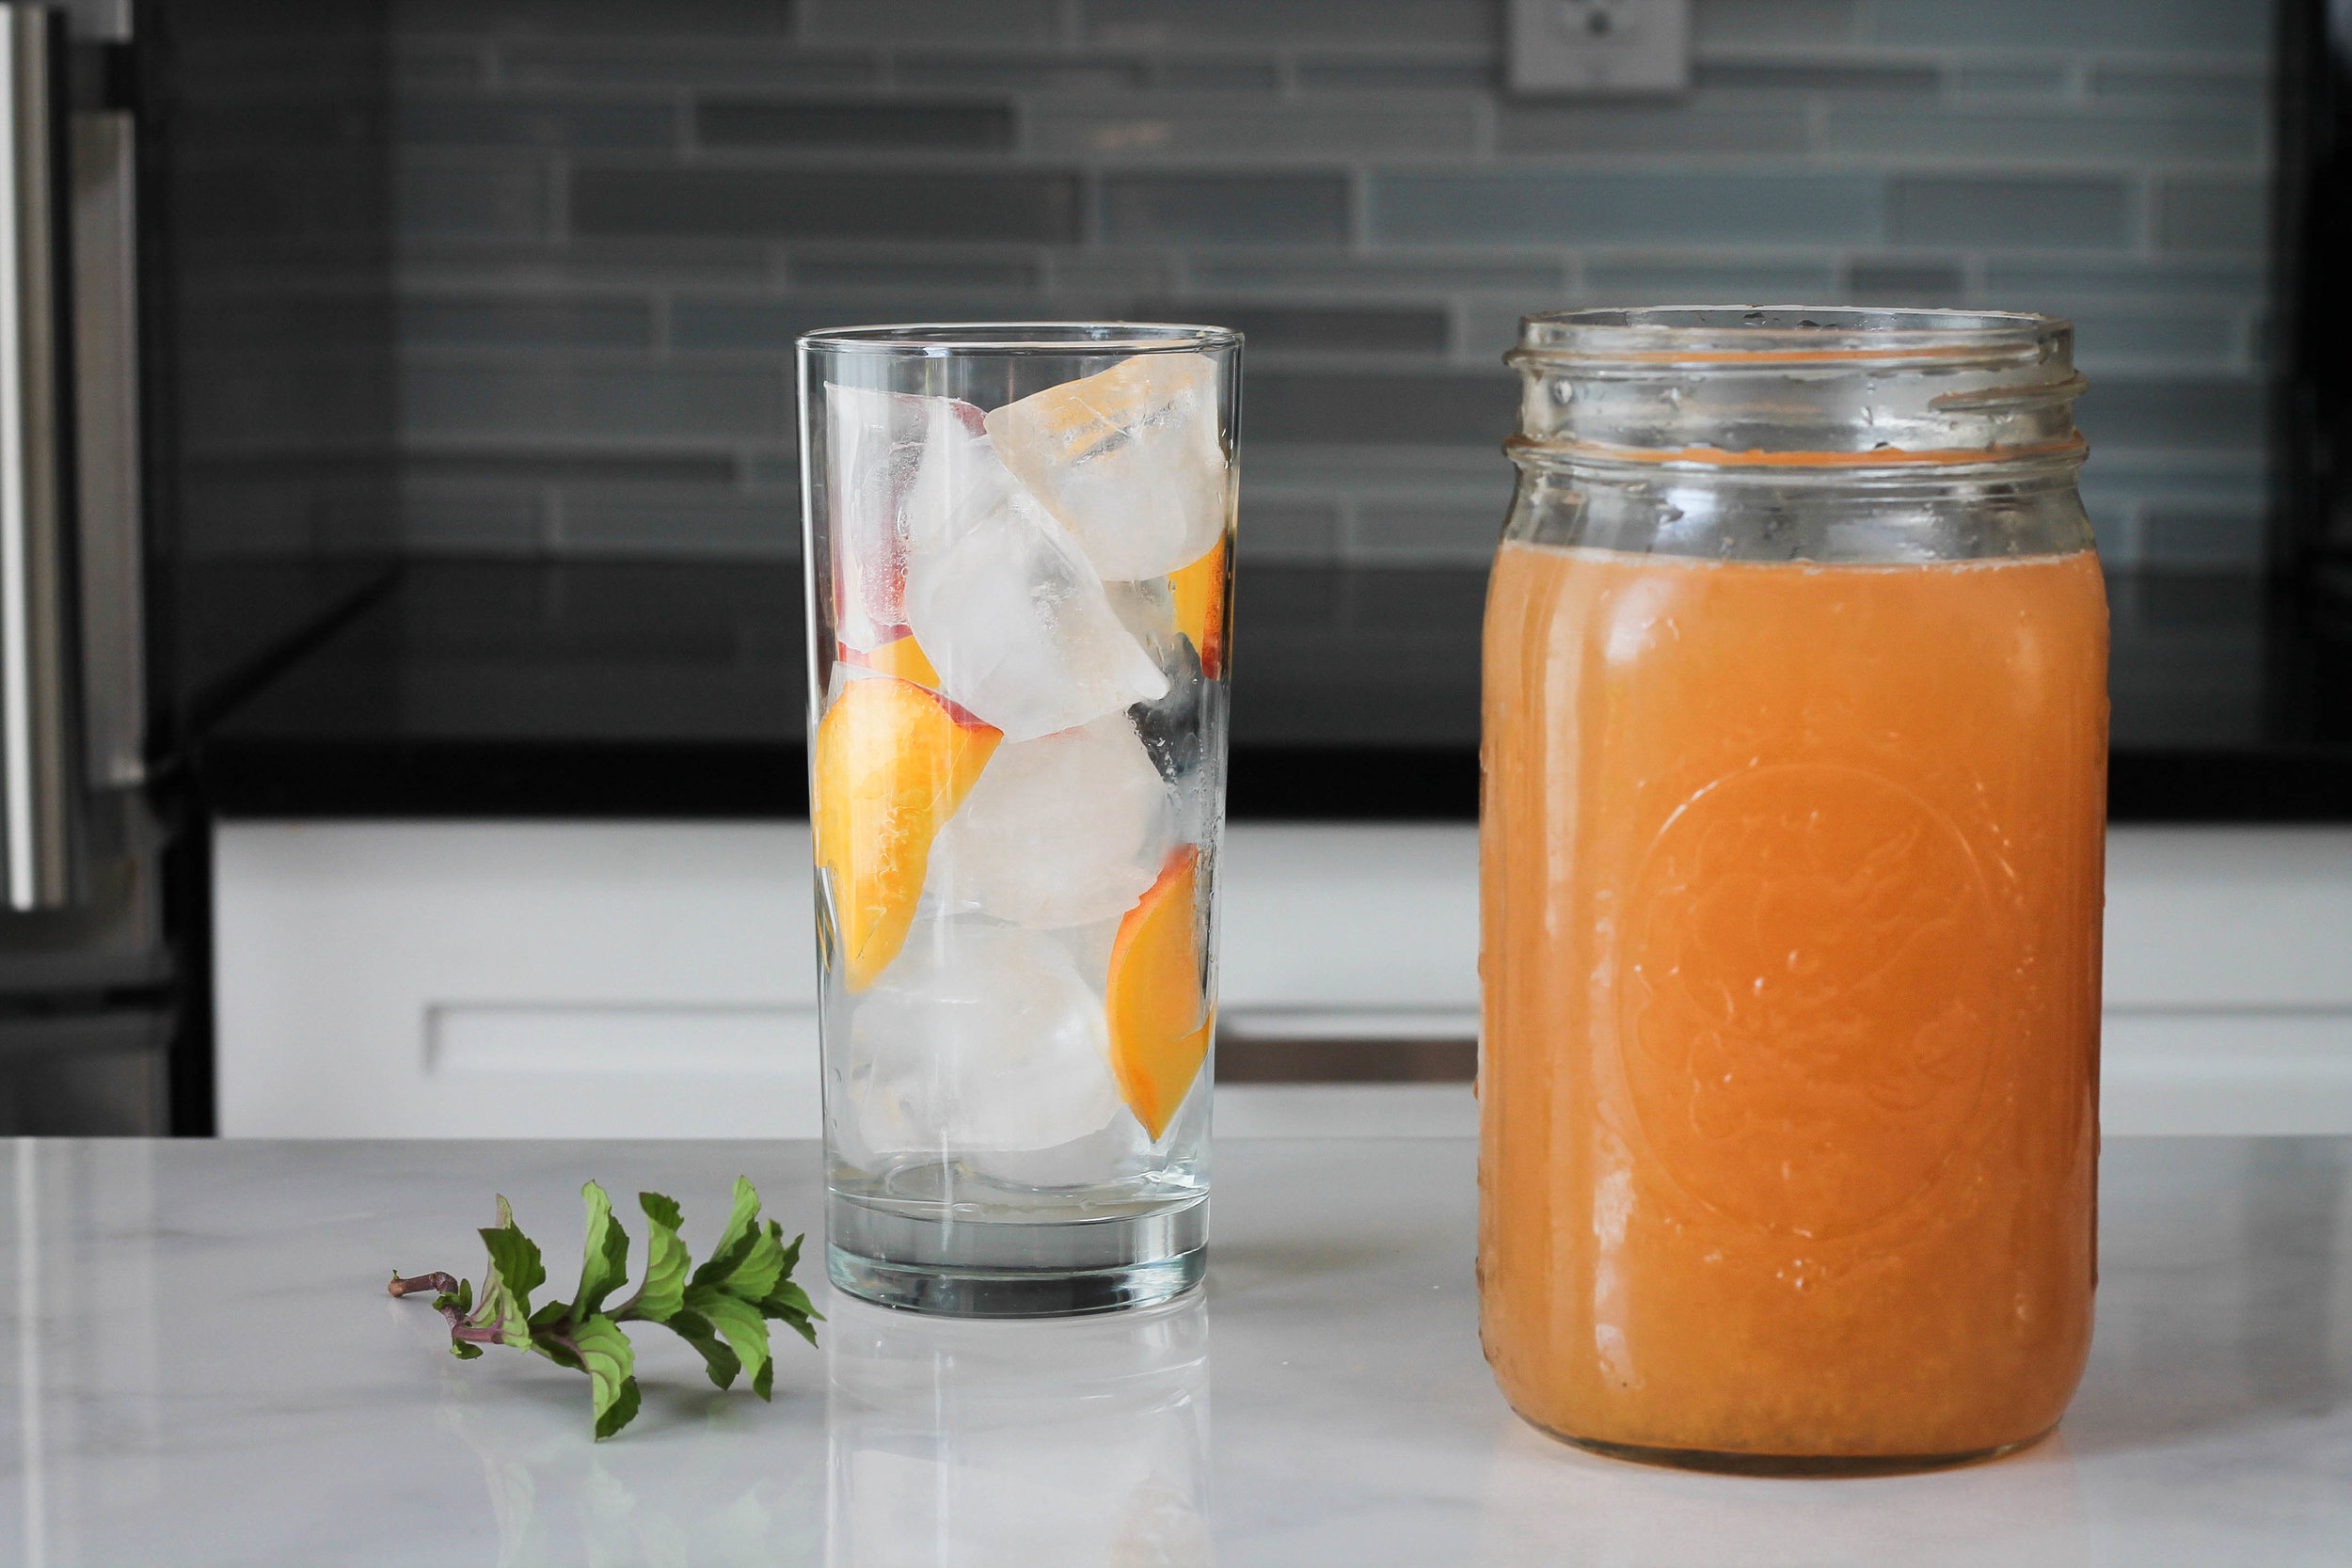 Peach Honey Ginger Iced Tea || Fresh + delicious iced green tea flavoured with peaches + ginger. No refined sugars, perfect as a mocktail for a summer picnic or bbq and can be easily made into a cocktail by adding bourbon, gin or vodka! dairy free. || creamandhoney.ca